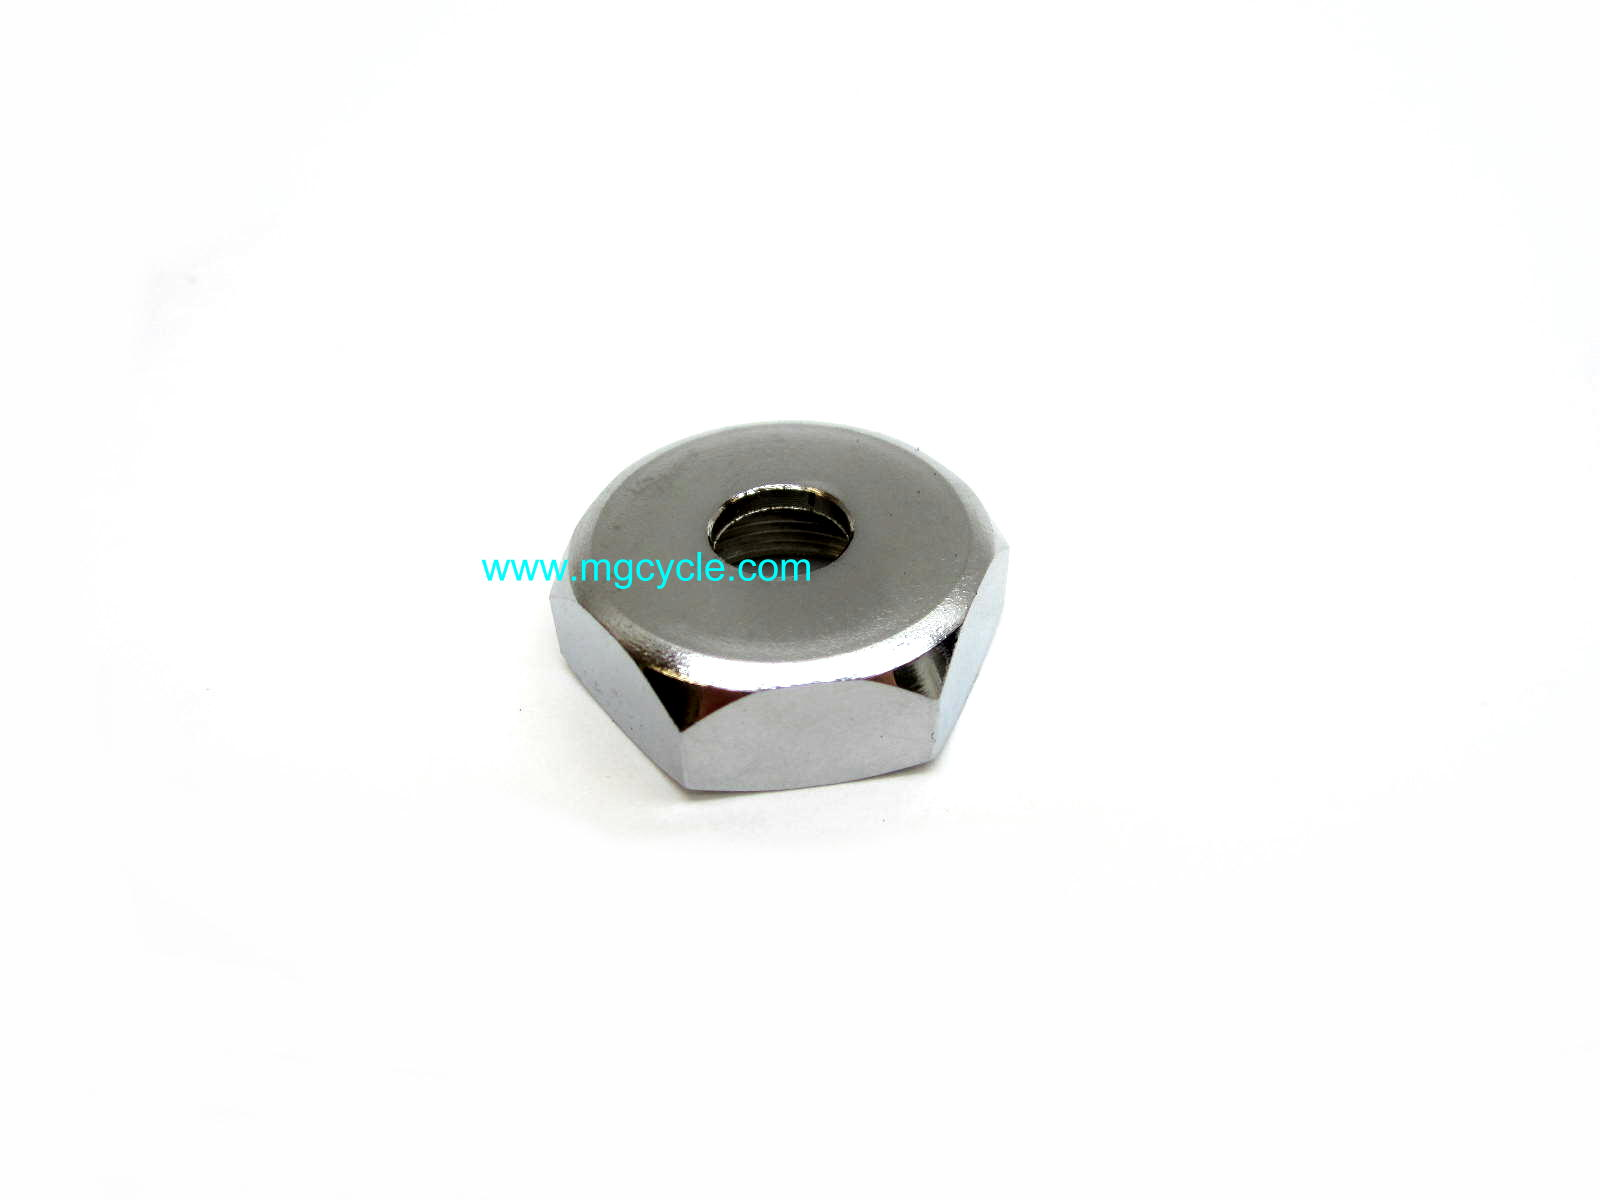 Cap nut, swingarm pivot, Tonti frame models, chrome GU14547800